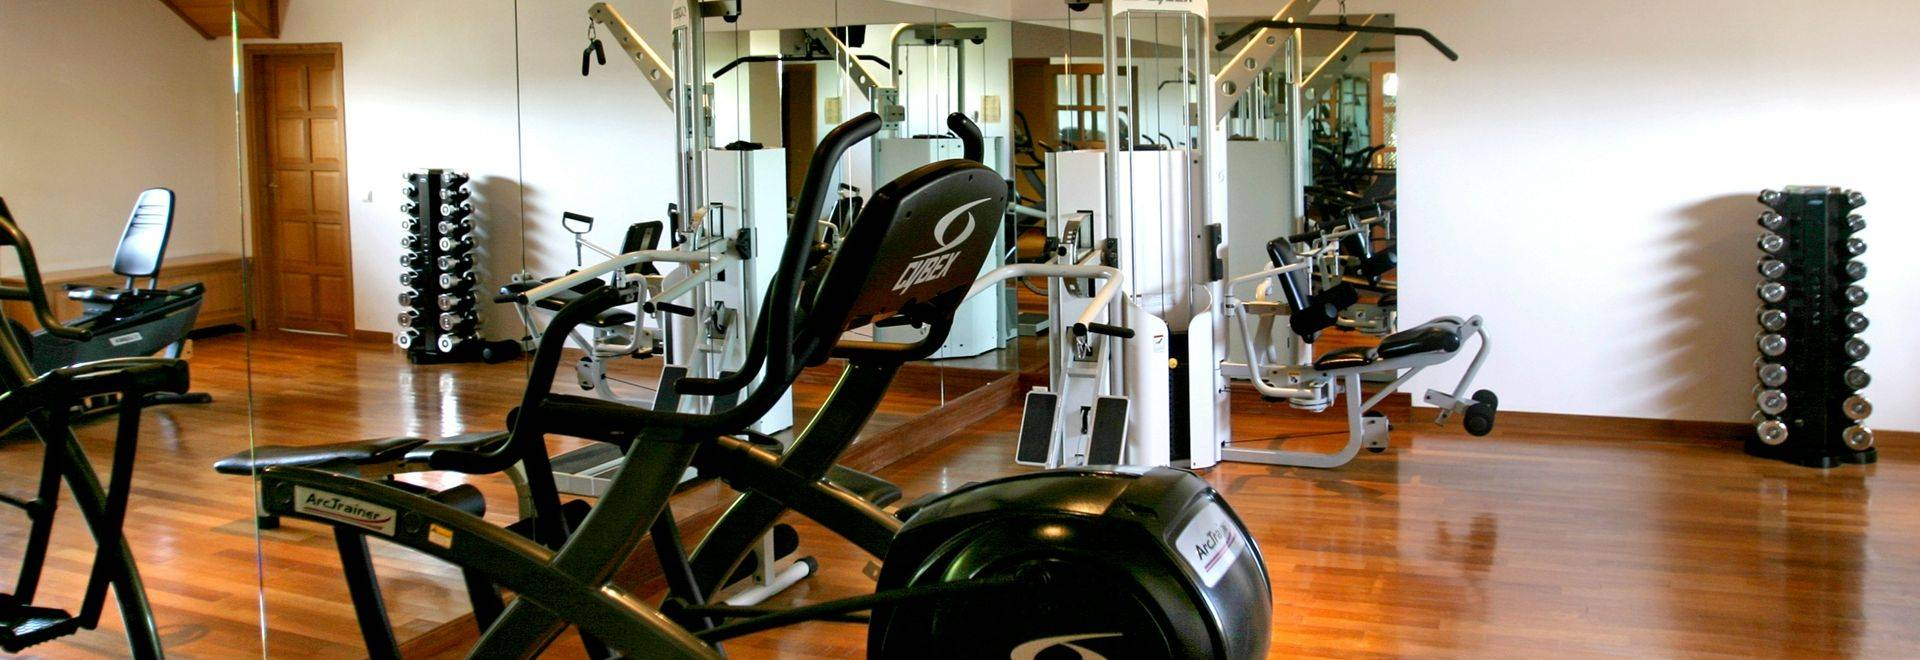 Porto-Elounda_gym-cybex-equipment.jpg